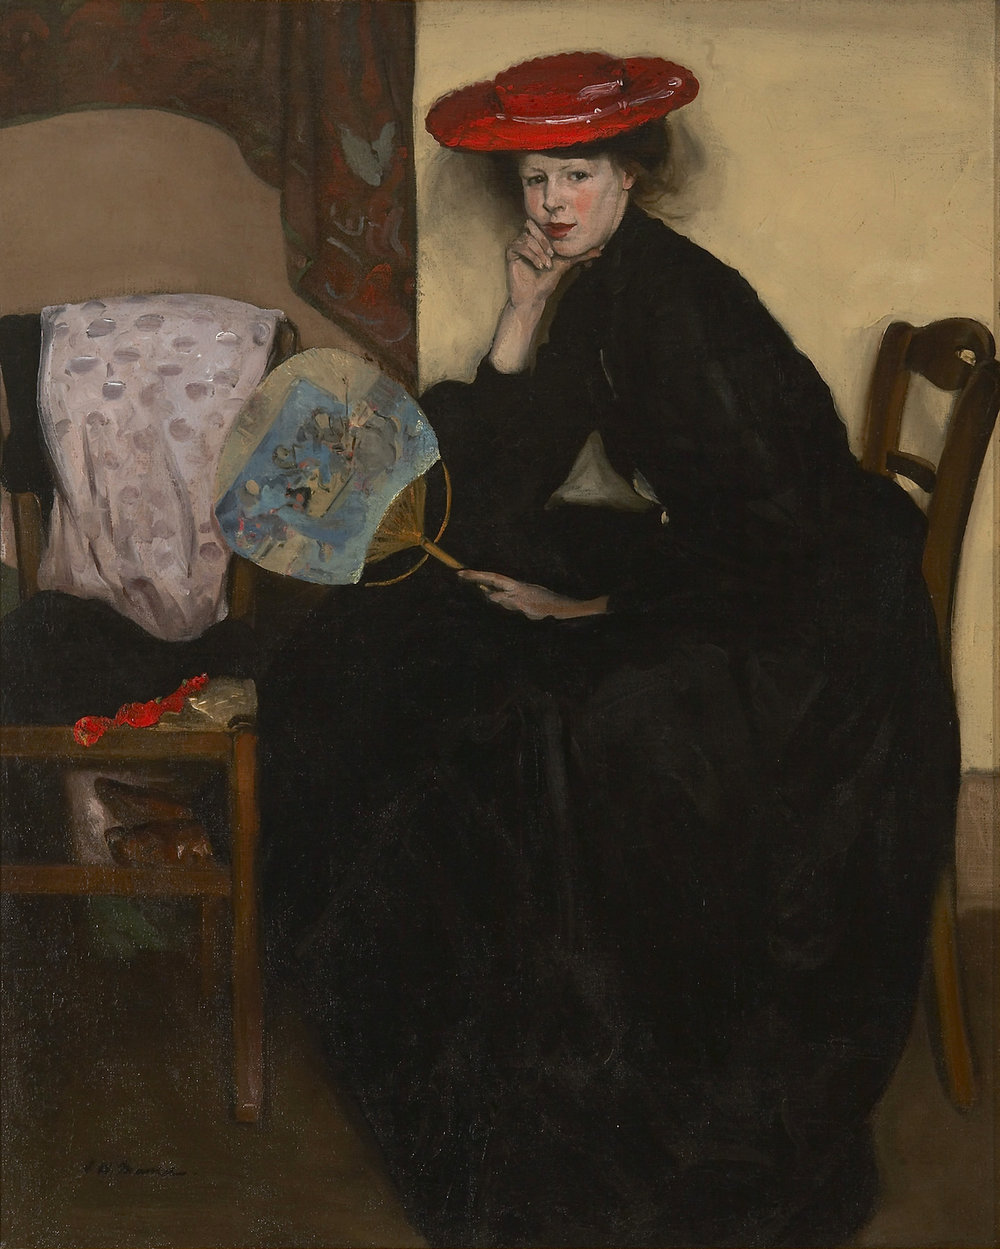 ALFRED MAURER  (1868-1932)  Model with a Japanese Fan , c. 1900 Oil on canvas 32 1/8 x 25 7/8 inches signed lower left: A.H. Maurer